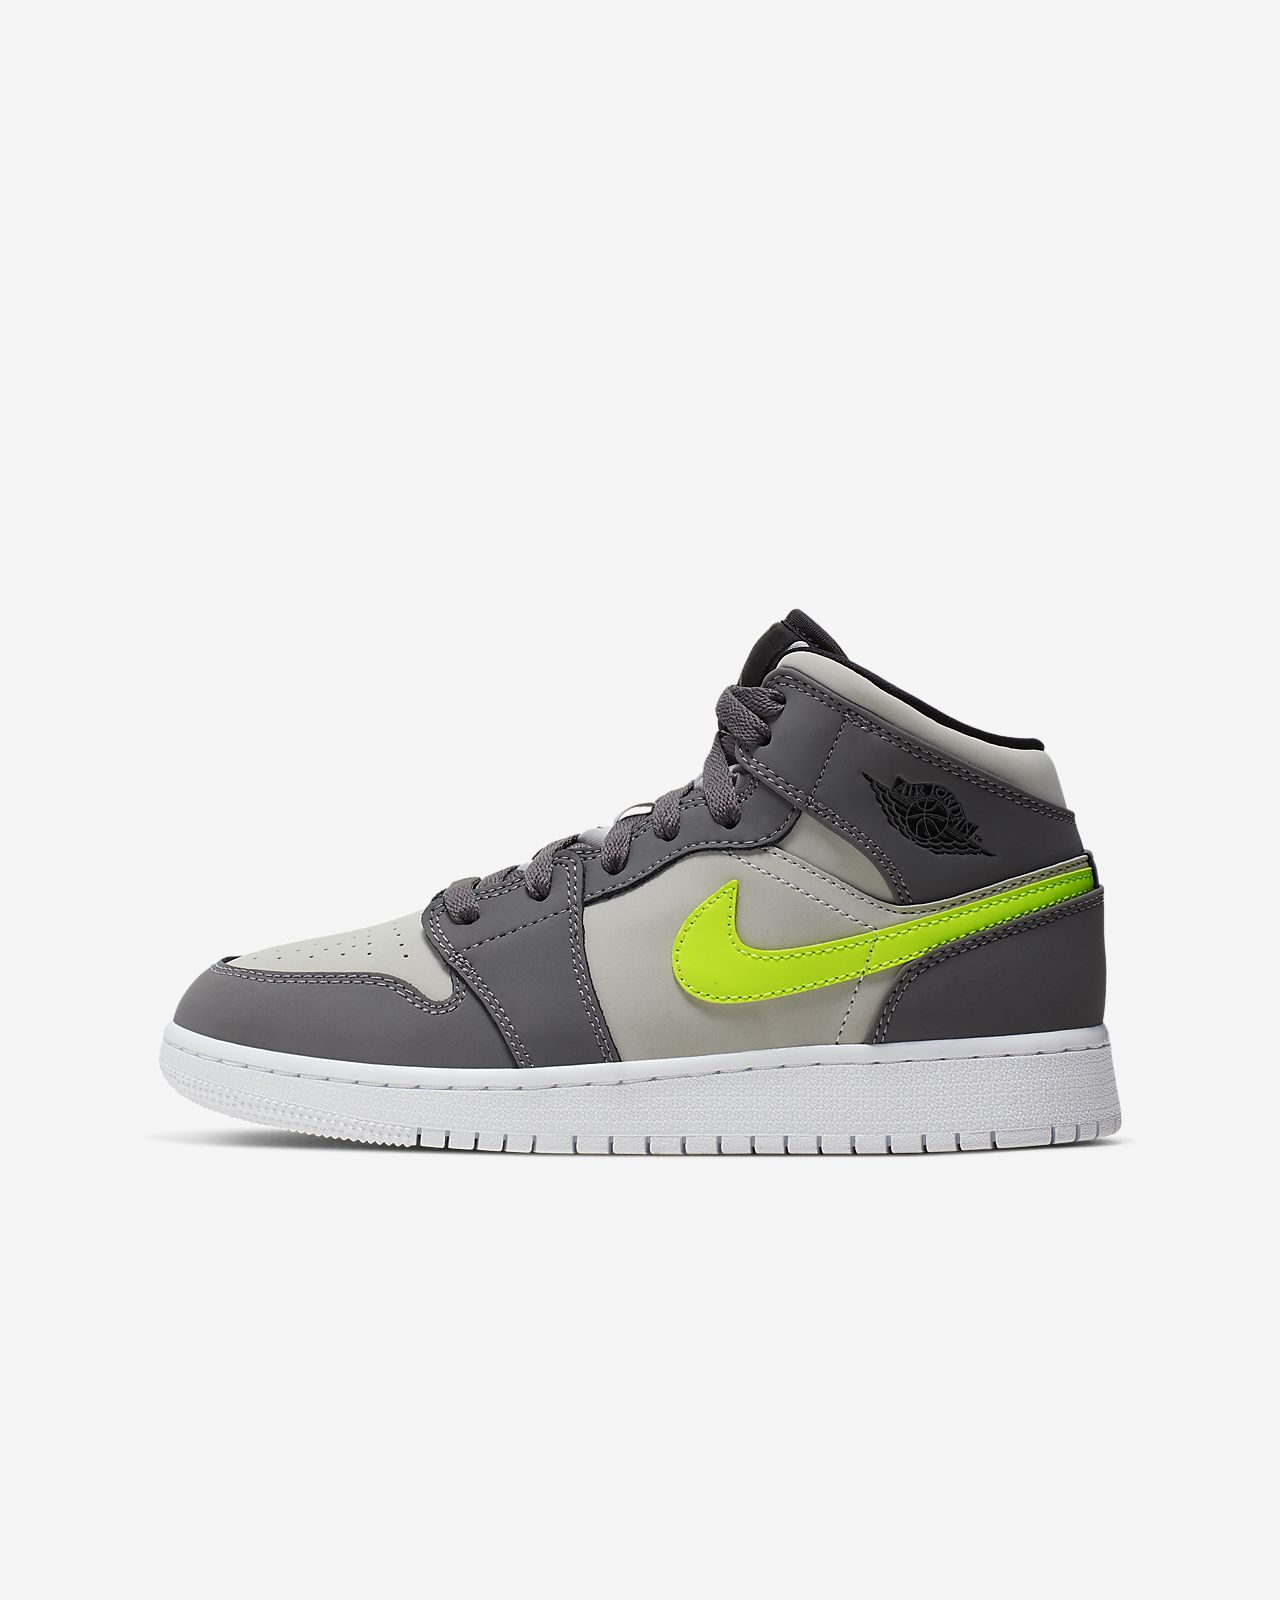 low priced 43dc9 64a46 Air Jordan 1 Mid Big Kids' Shoe